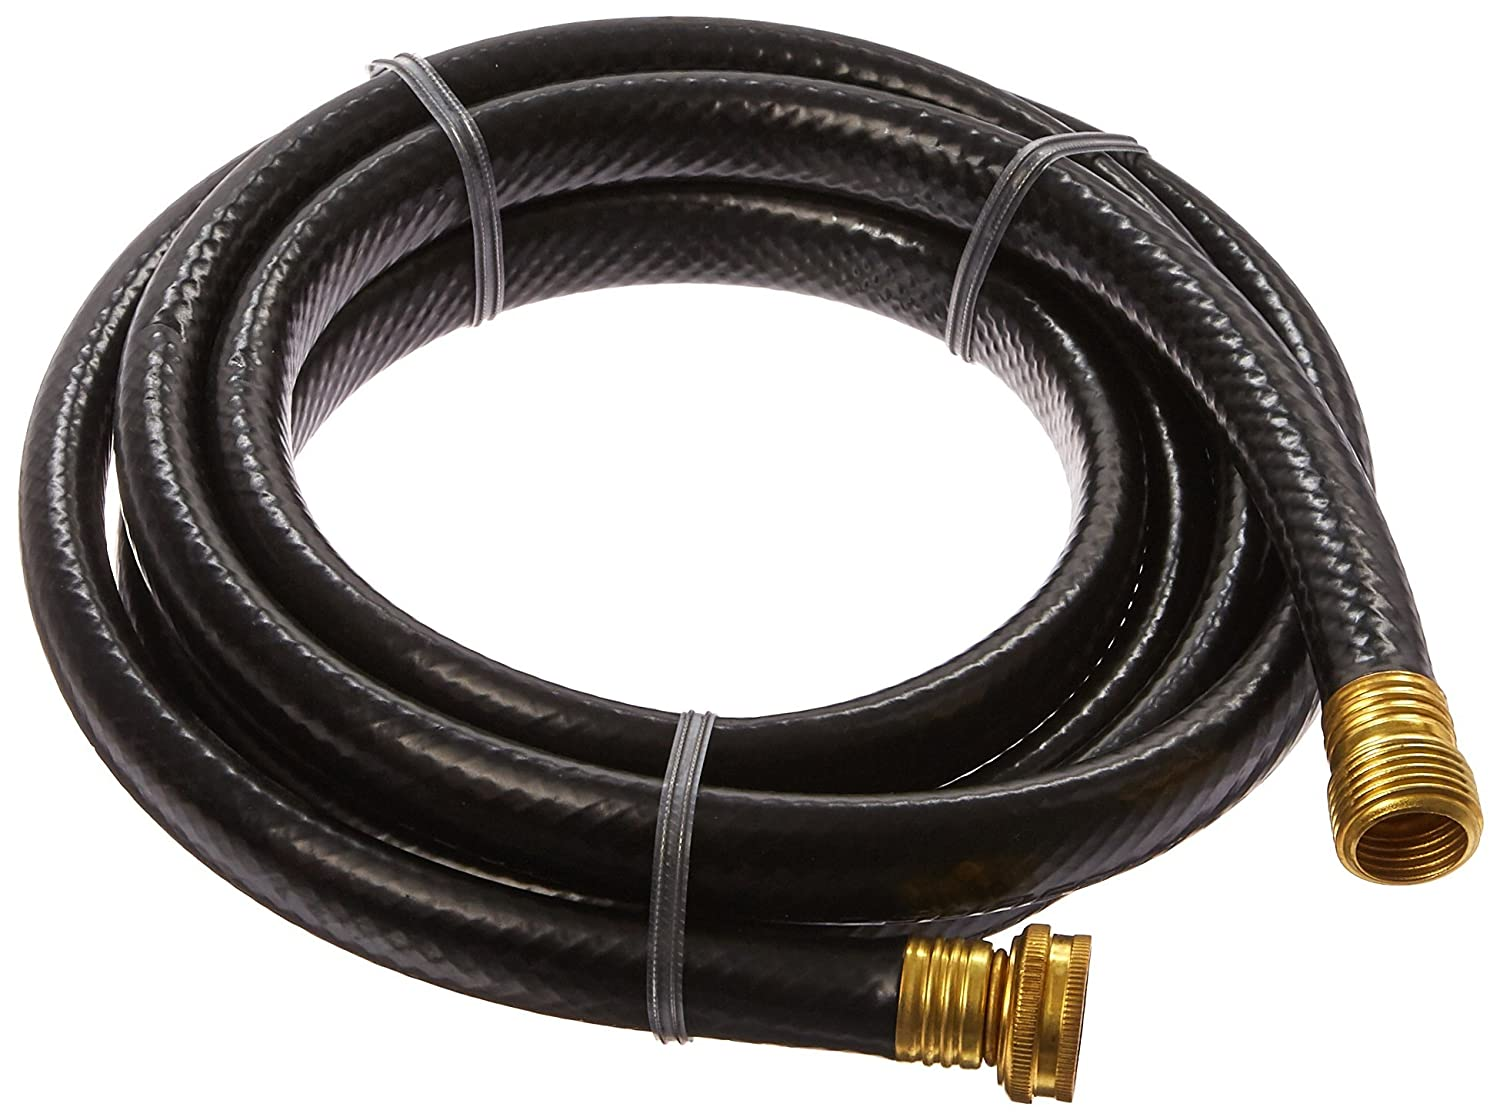 Suncast Outdoor Hose Extension - Garden House Extension 10 Feet - Great for Industrial or Domestic Use in Your Yard or Garden